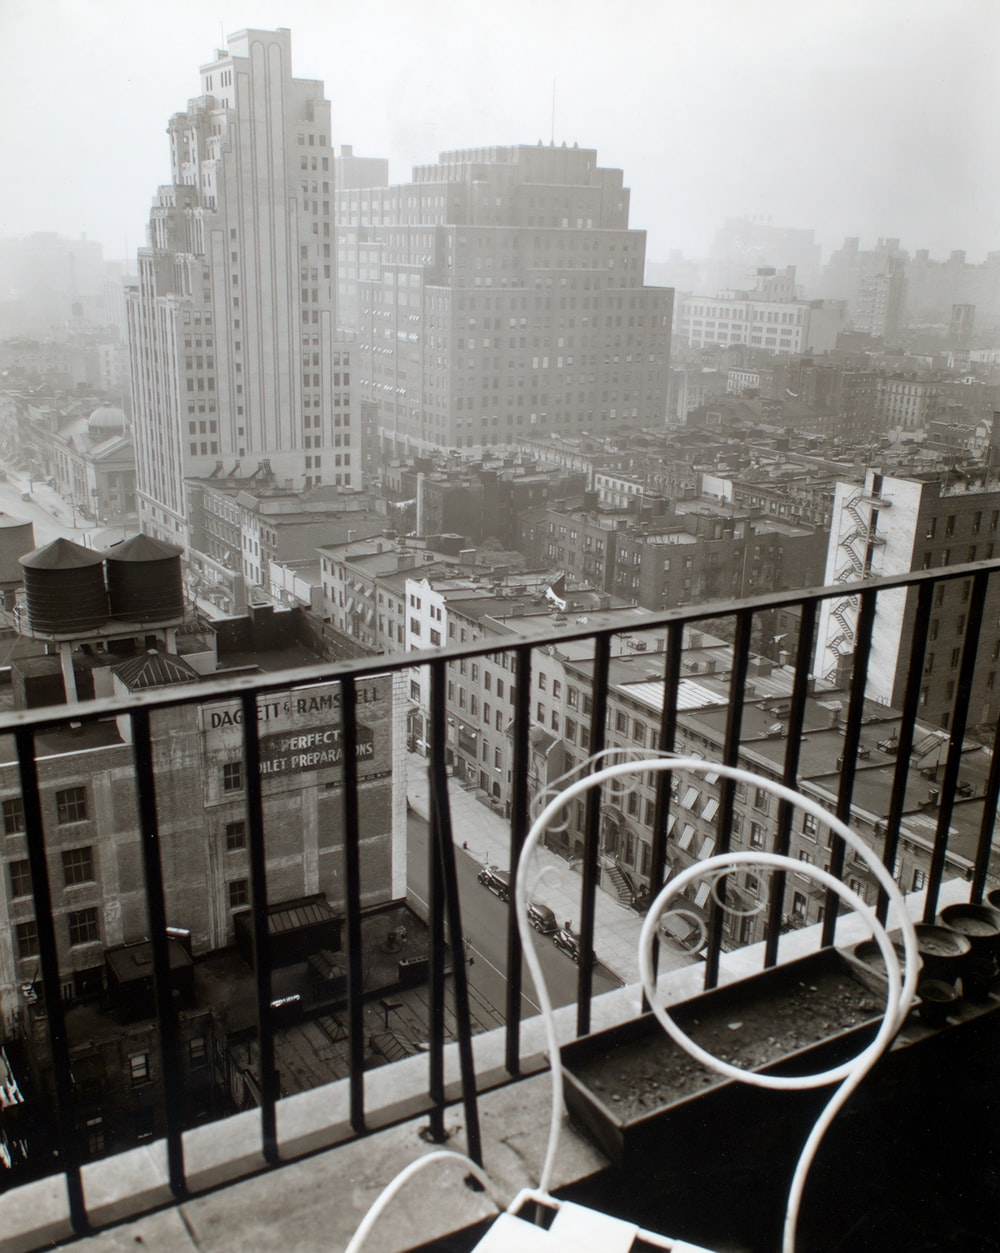 small balcony with white chair near city buildings during daytime